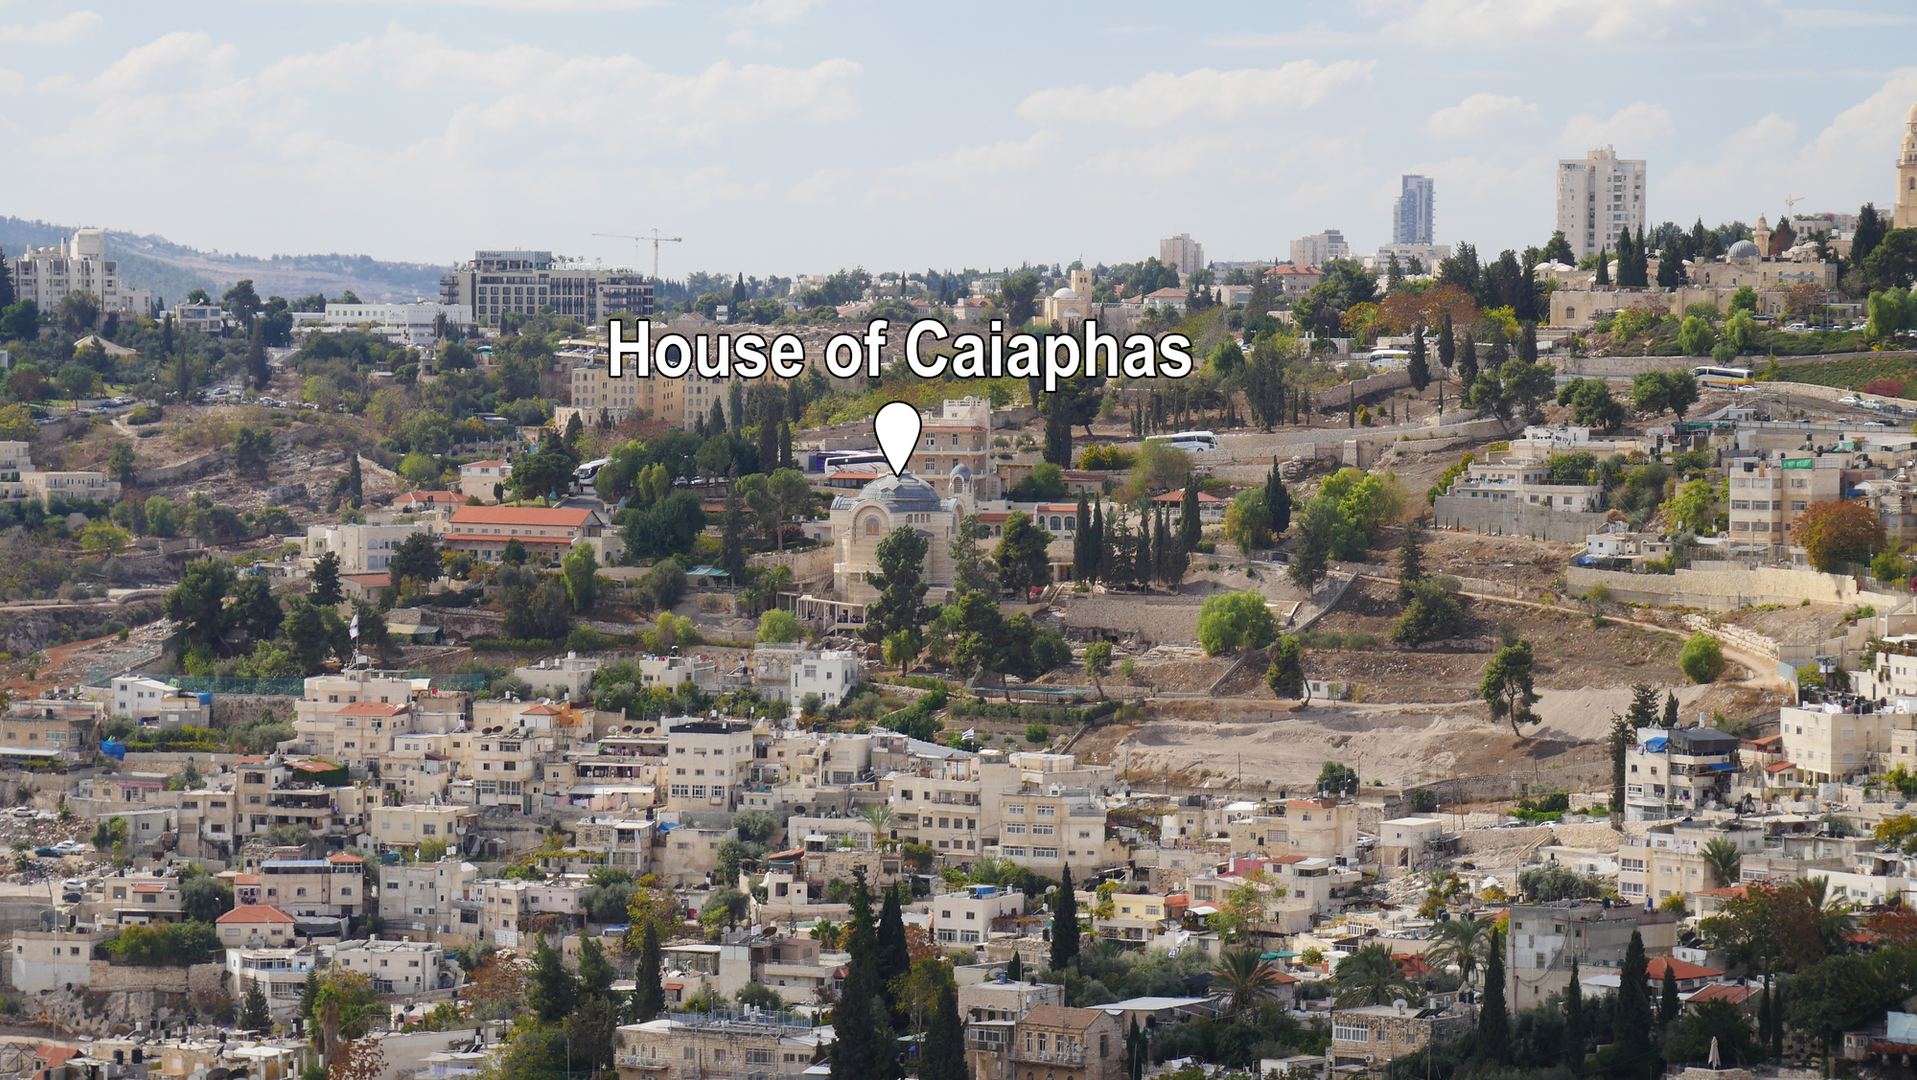 House of Caiaphas.png